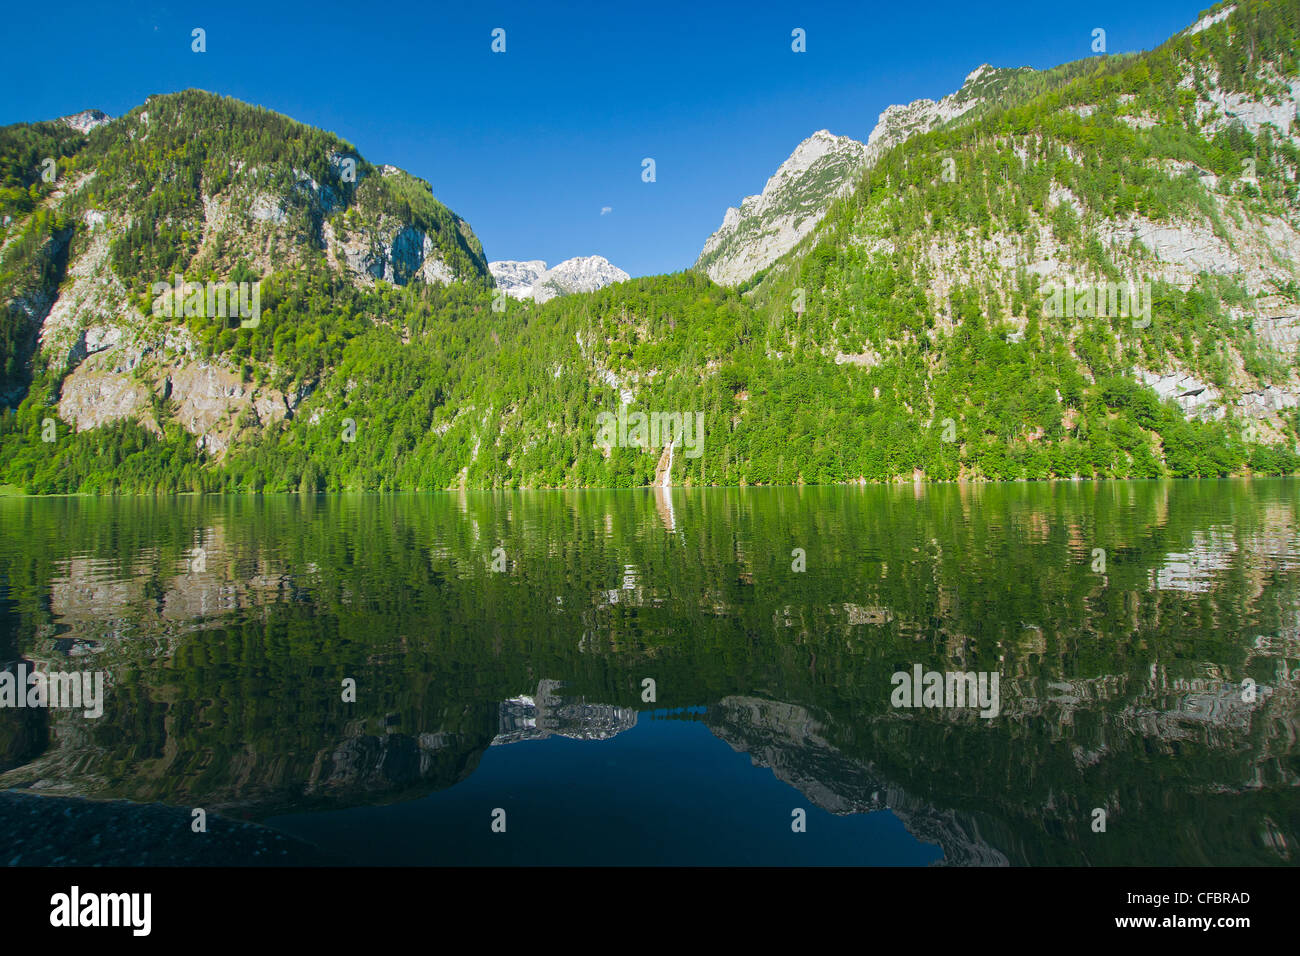 Europe, Germany, Bavaria, Upper Bavaria, Berchtesgaden country, Berchtesgaden, Alps, mountains, cliff, panorama, - Stock Image